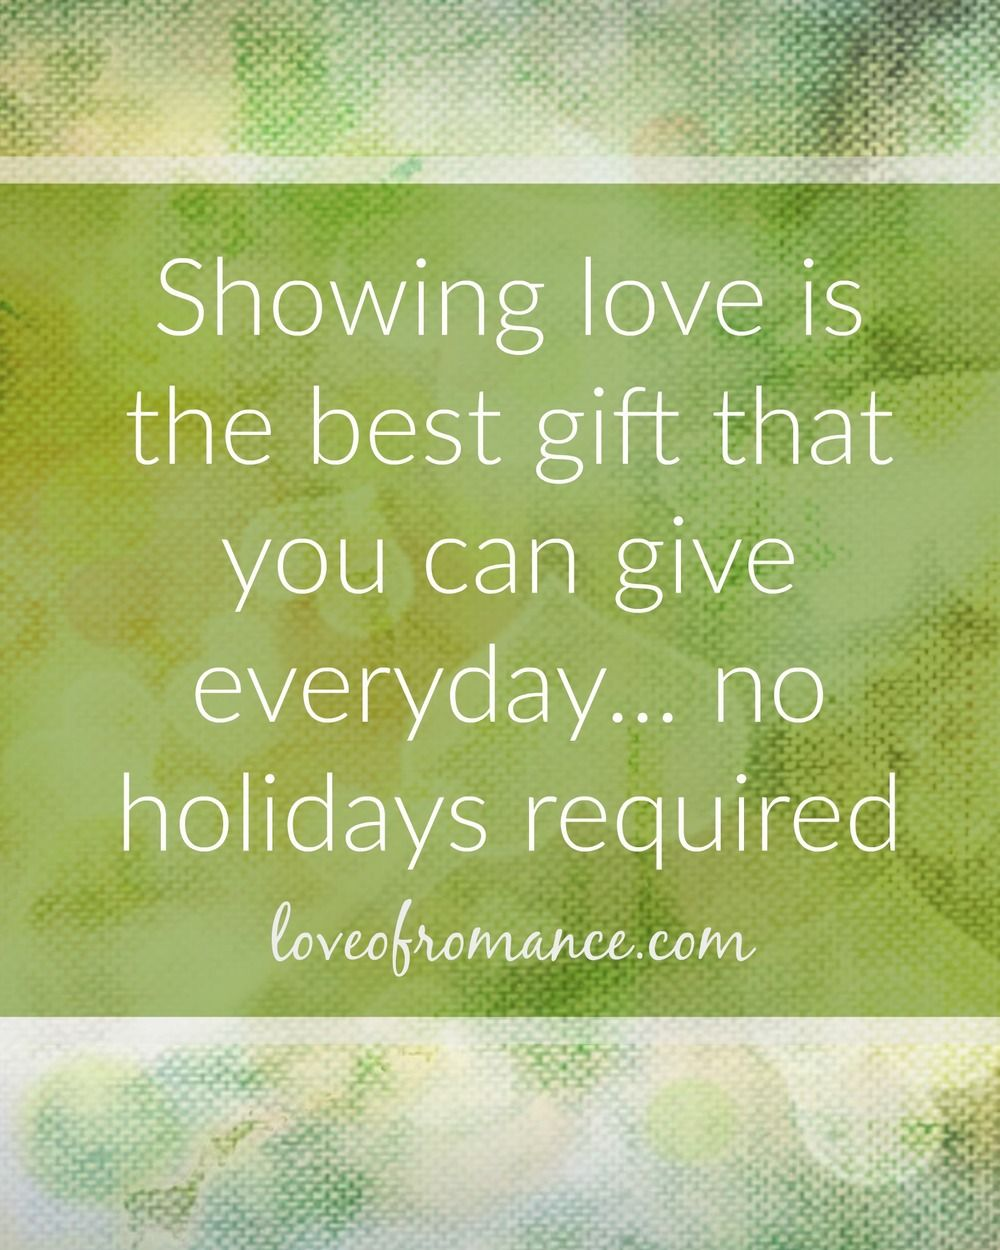 The Best Gift Quote  Gift quotes, Love and romance quotes